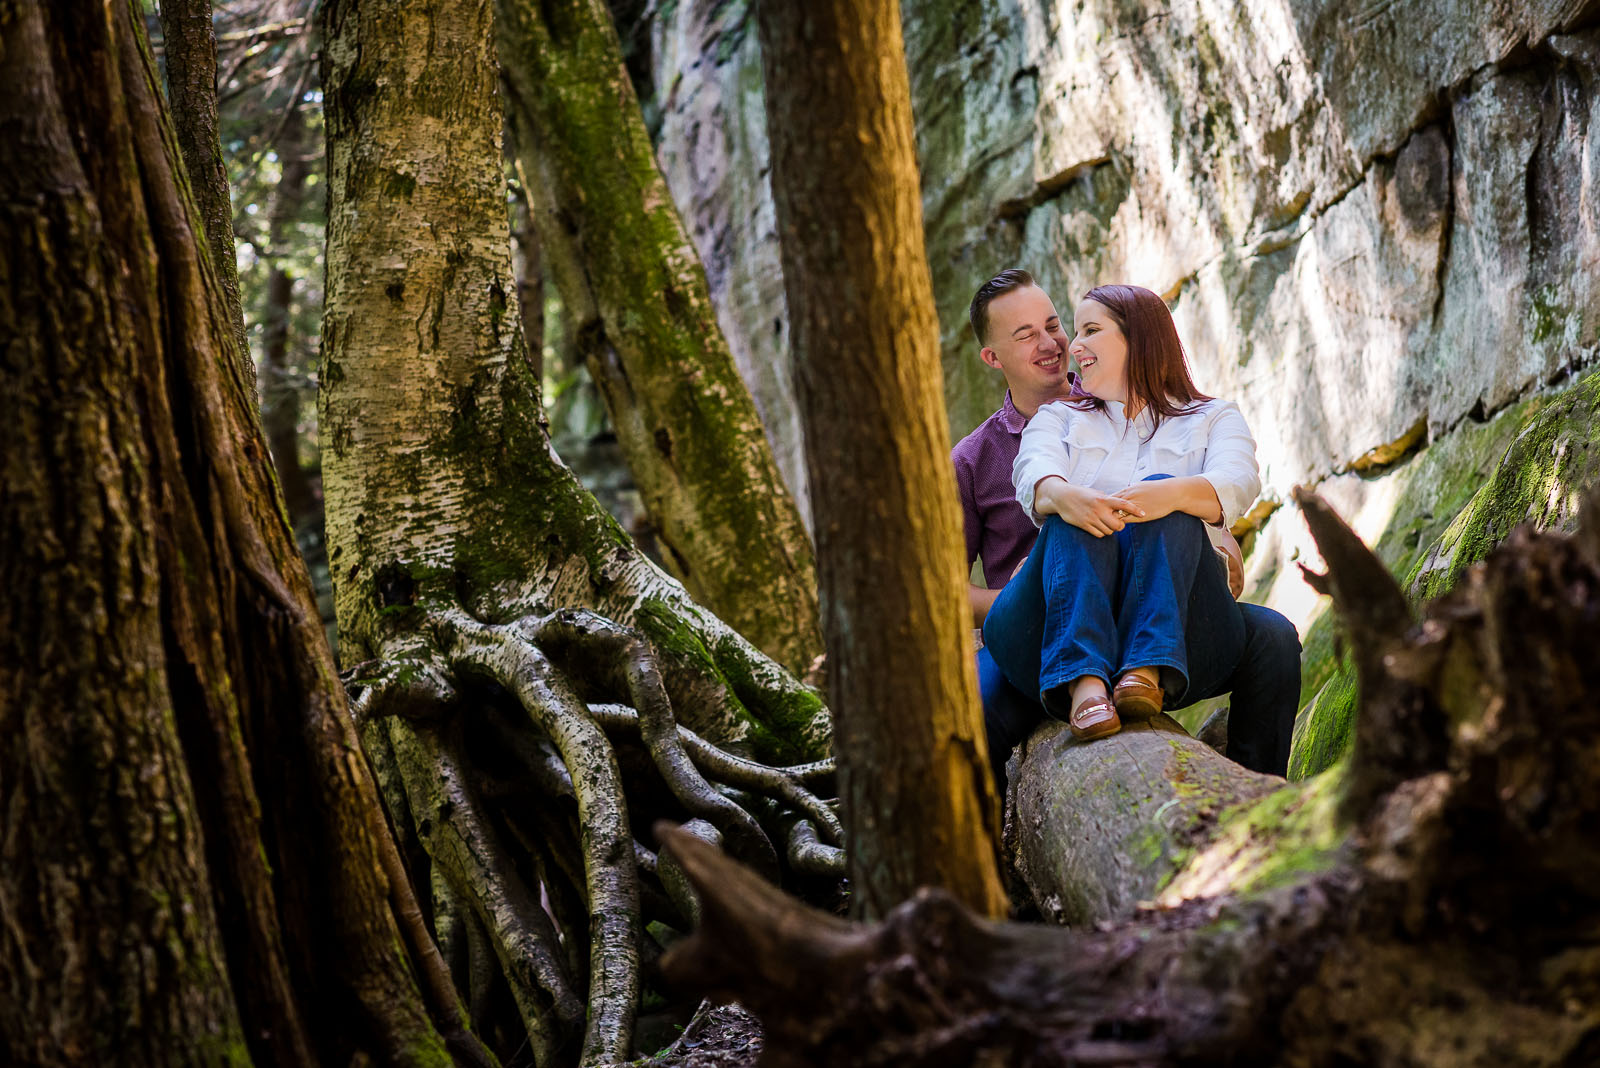 Eric_and_Christy_Photography_Blog_2017_Best_Engagement-22